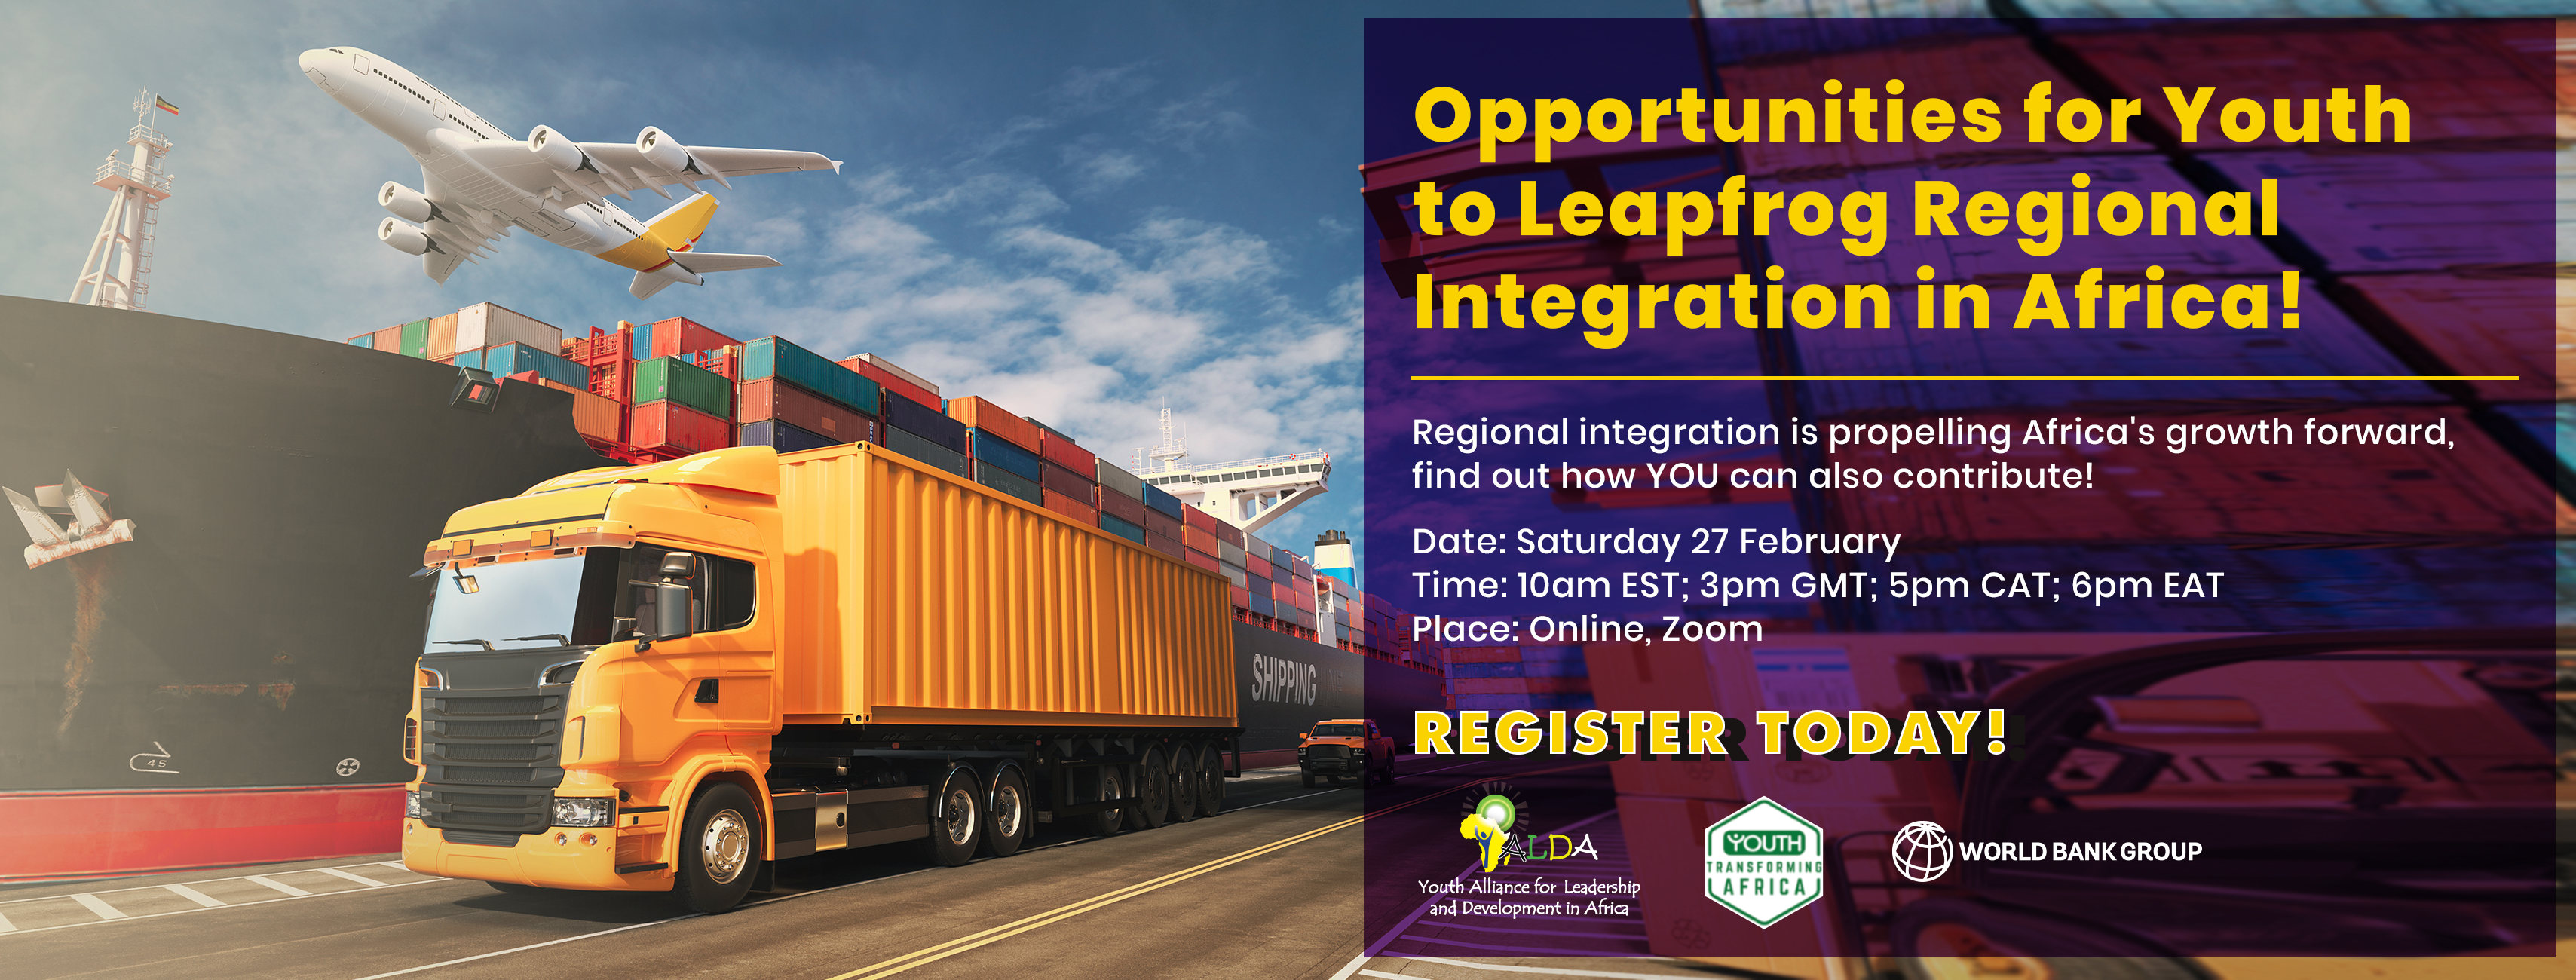 Opportunities for Youth to Leapfrog Regional Integration in Africa